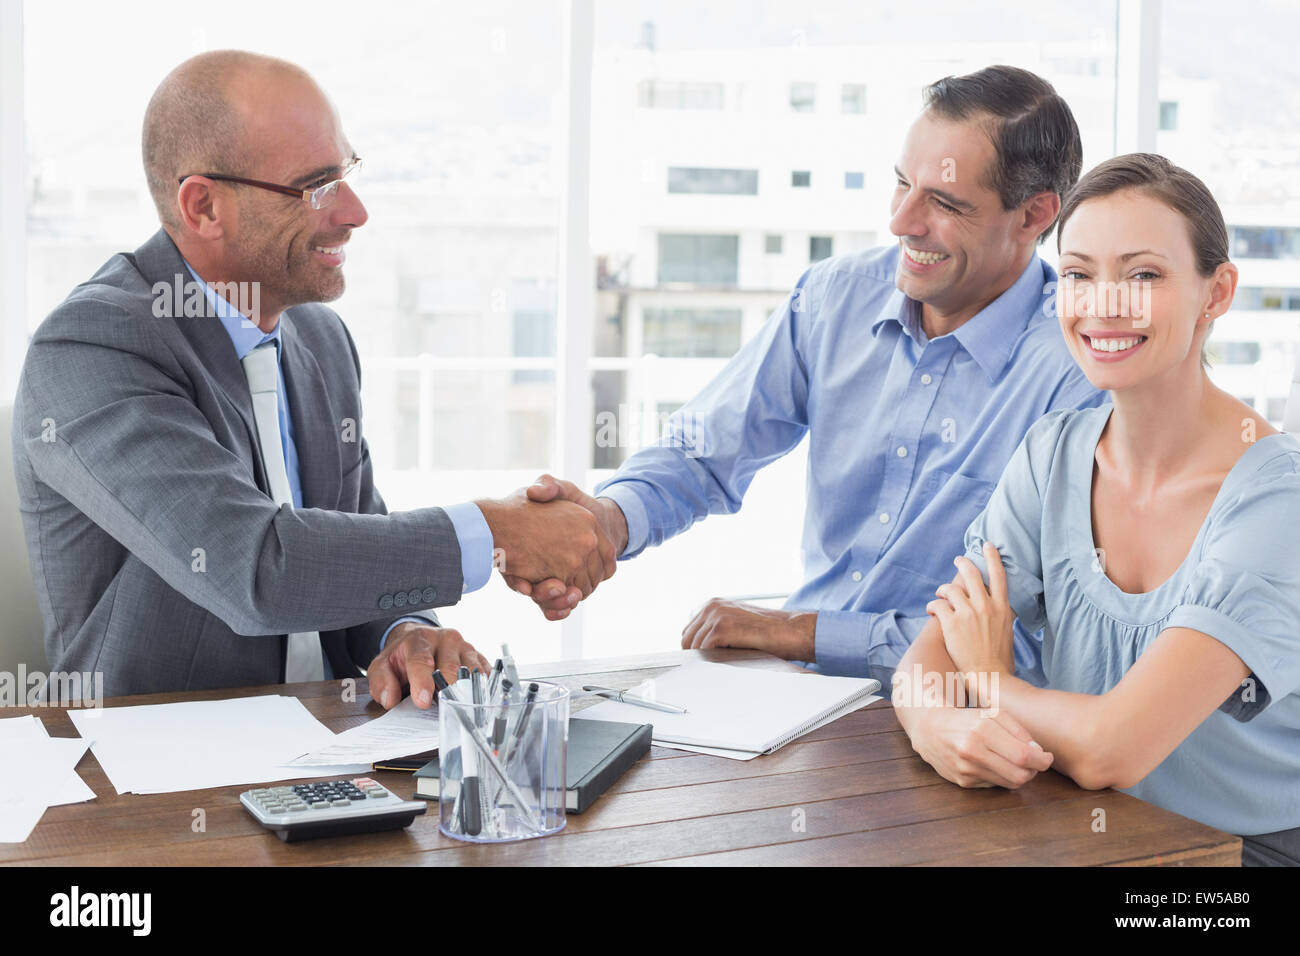 Businessman shaking hands with a co worker - Stock Image